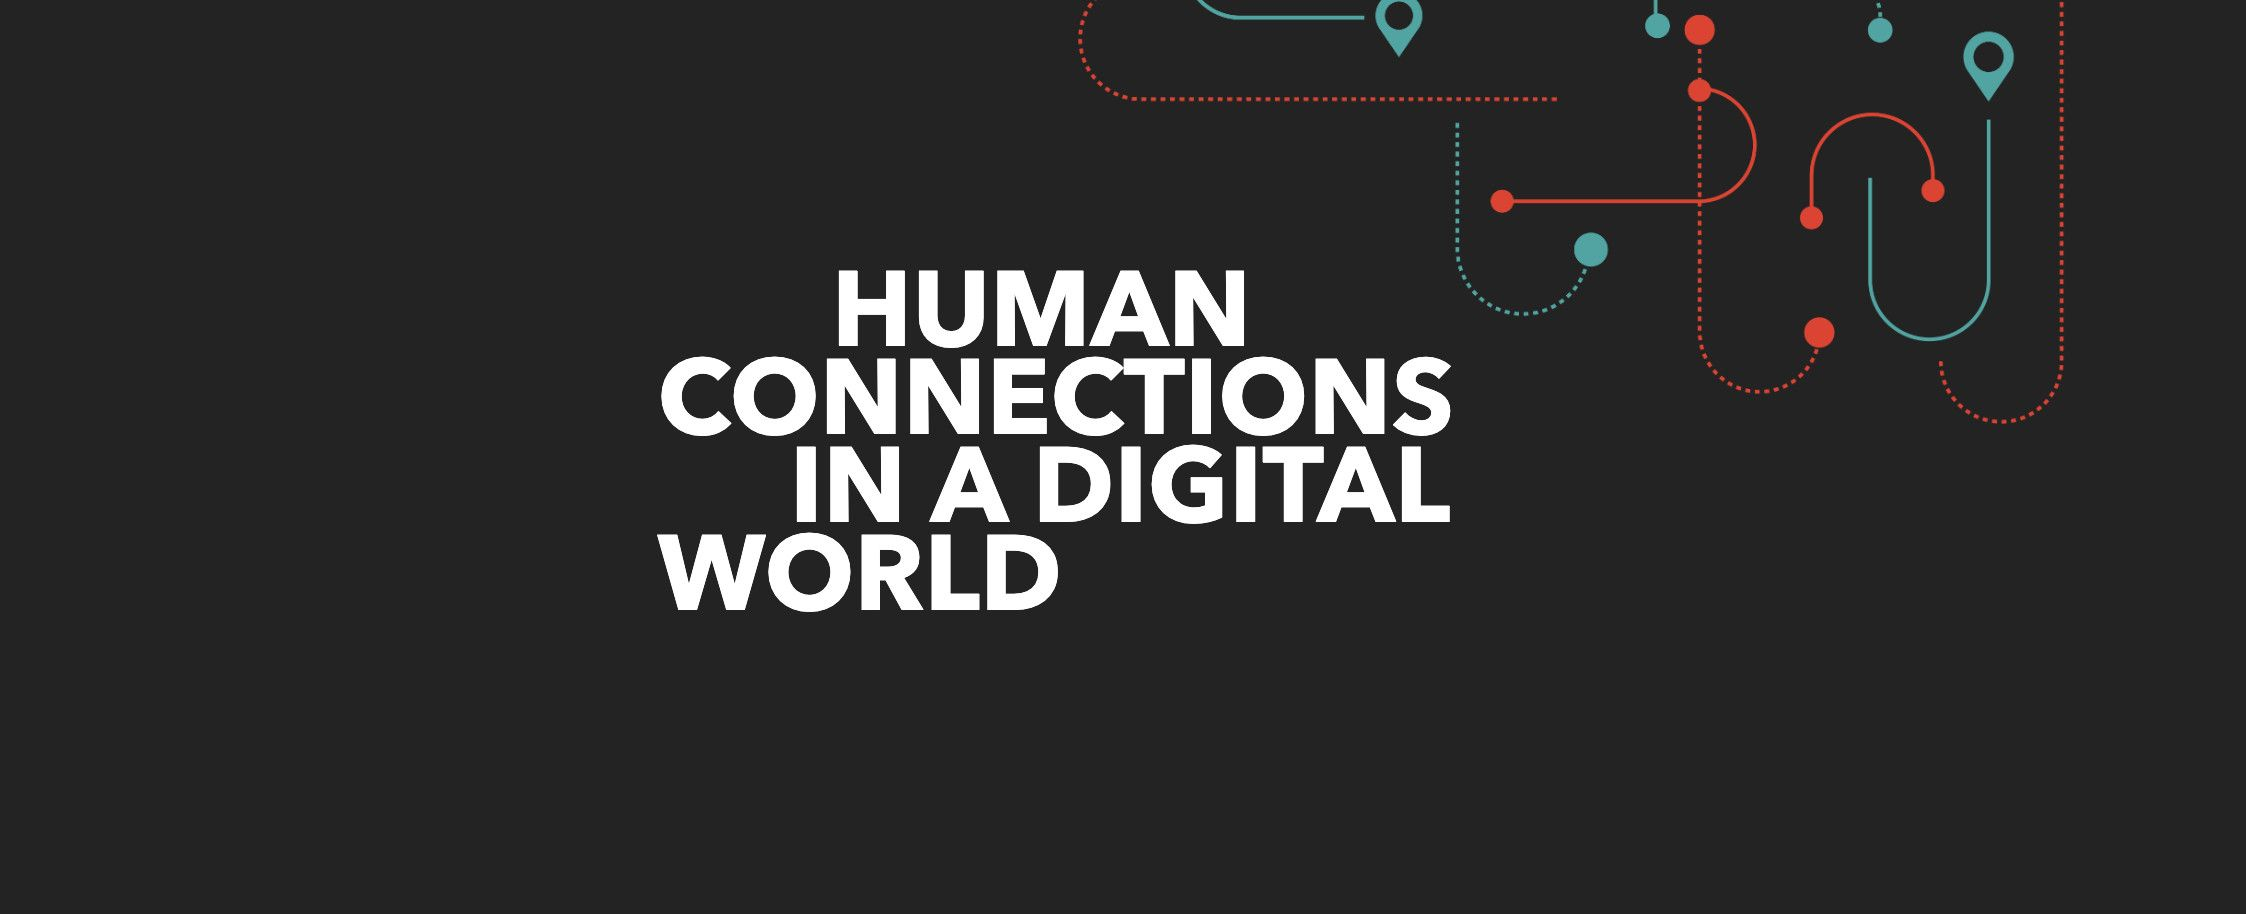 https://www.contentbloom.com/wp-content/uploads/2019/11/sitecore-human-connections-in-a-digital-world.jpg